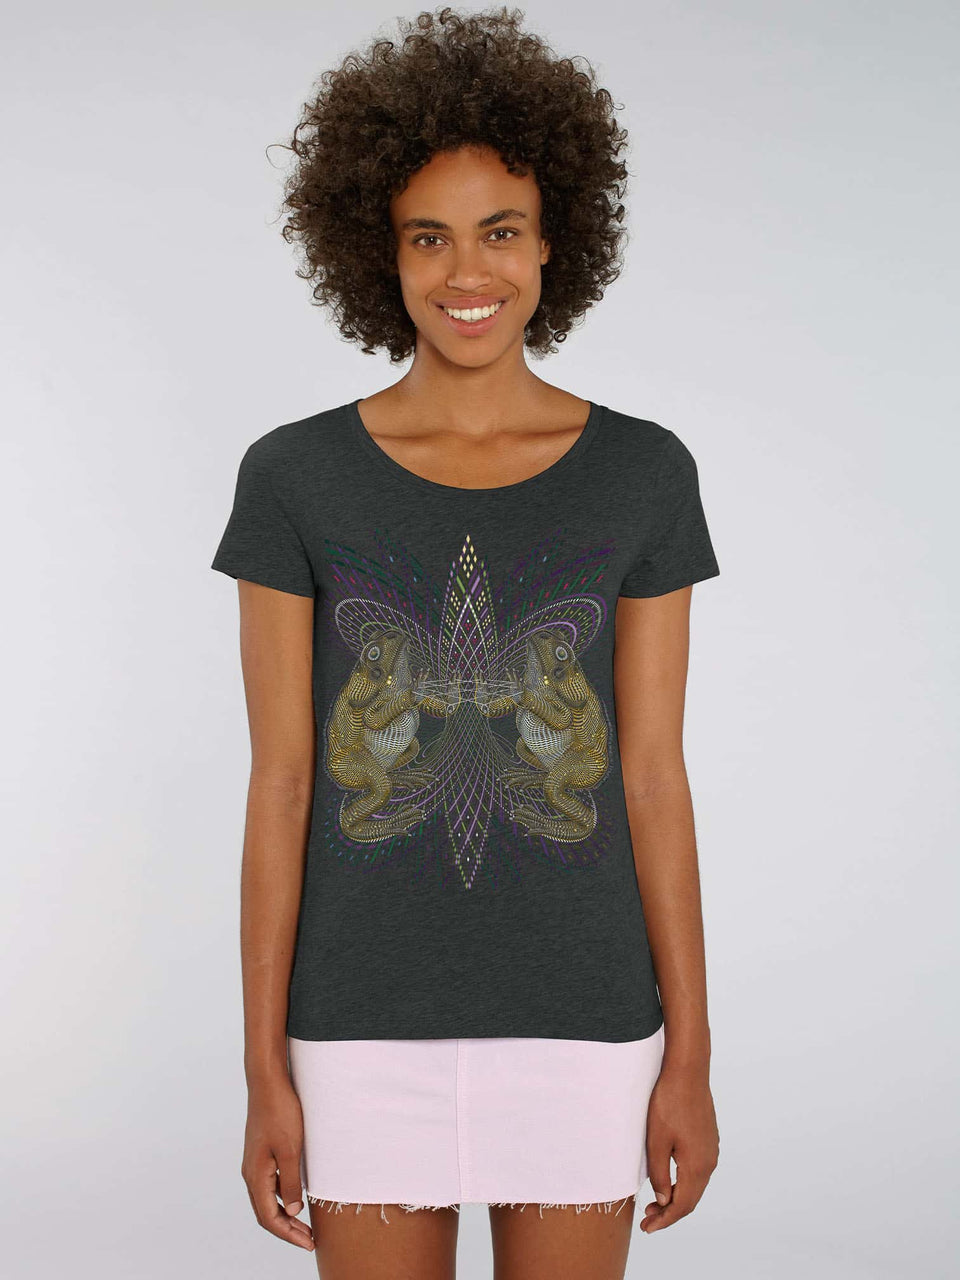 Bufo Alvarius Made To Order Women t-shirt - Dark Heather Grey